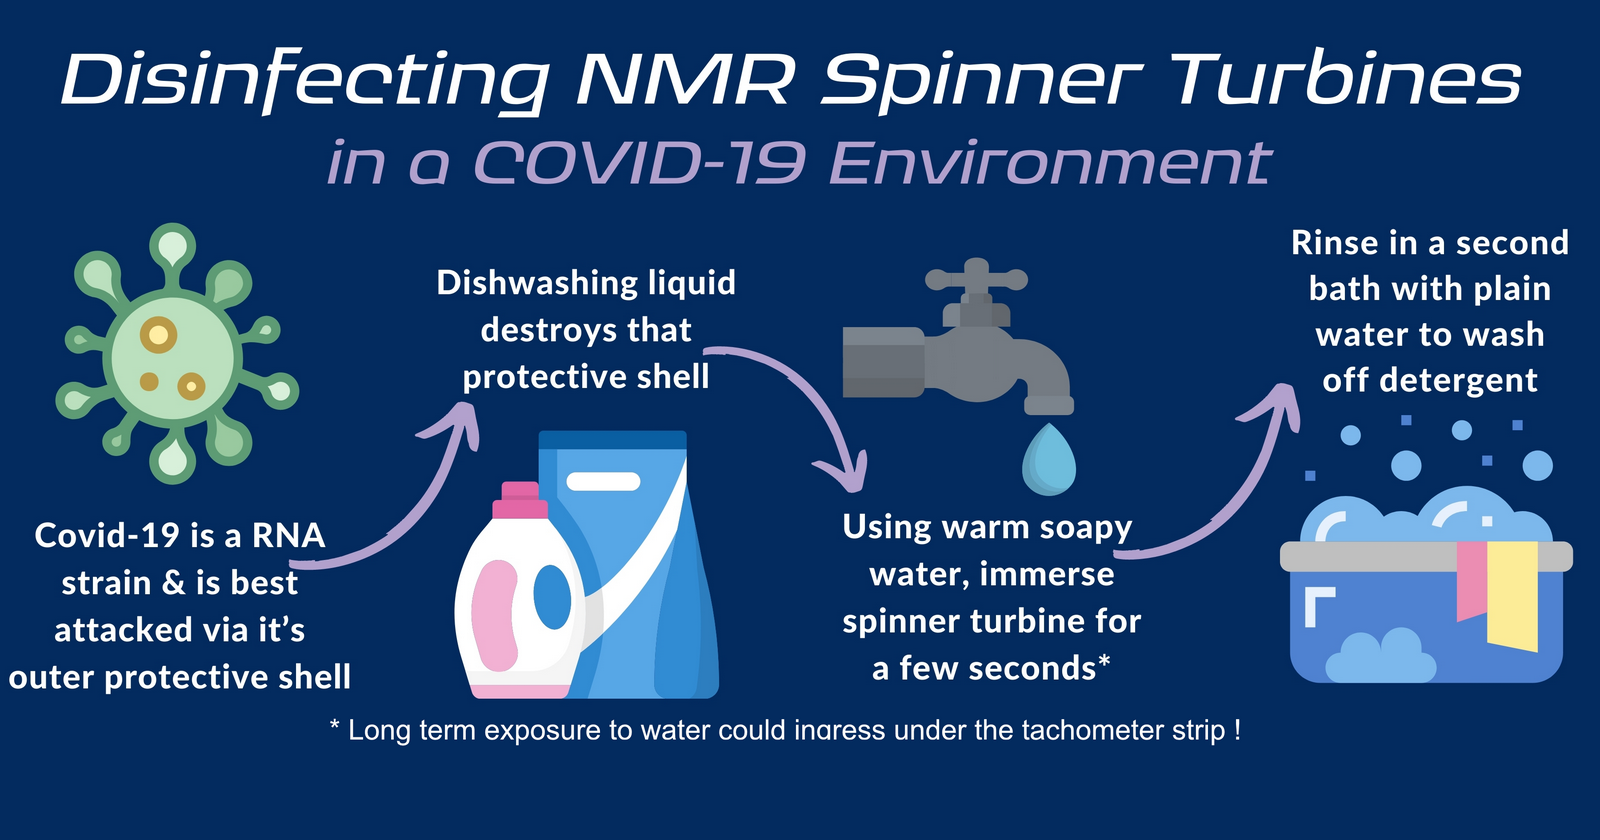 Disinfecting NMR Spinner Turbines